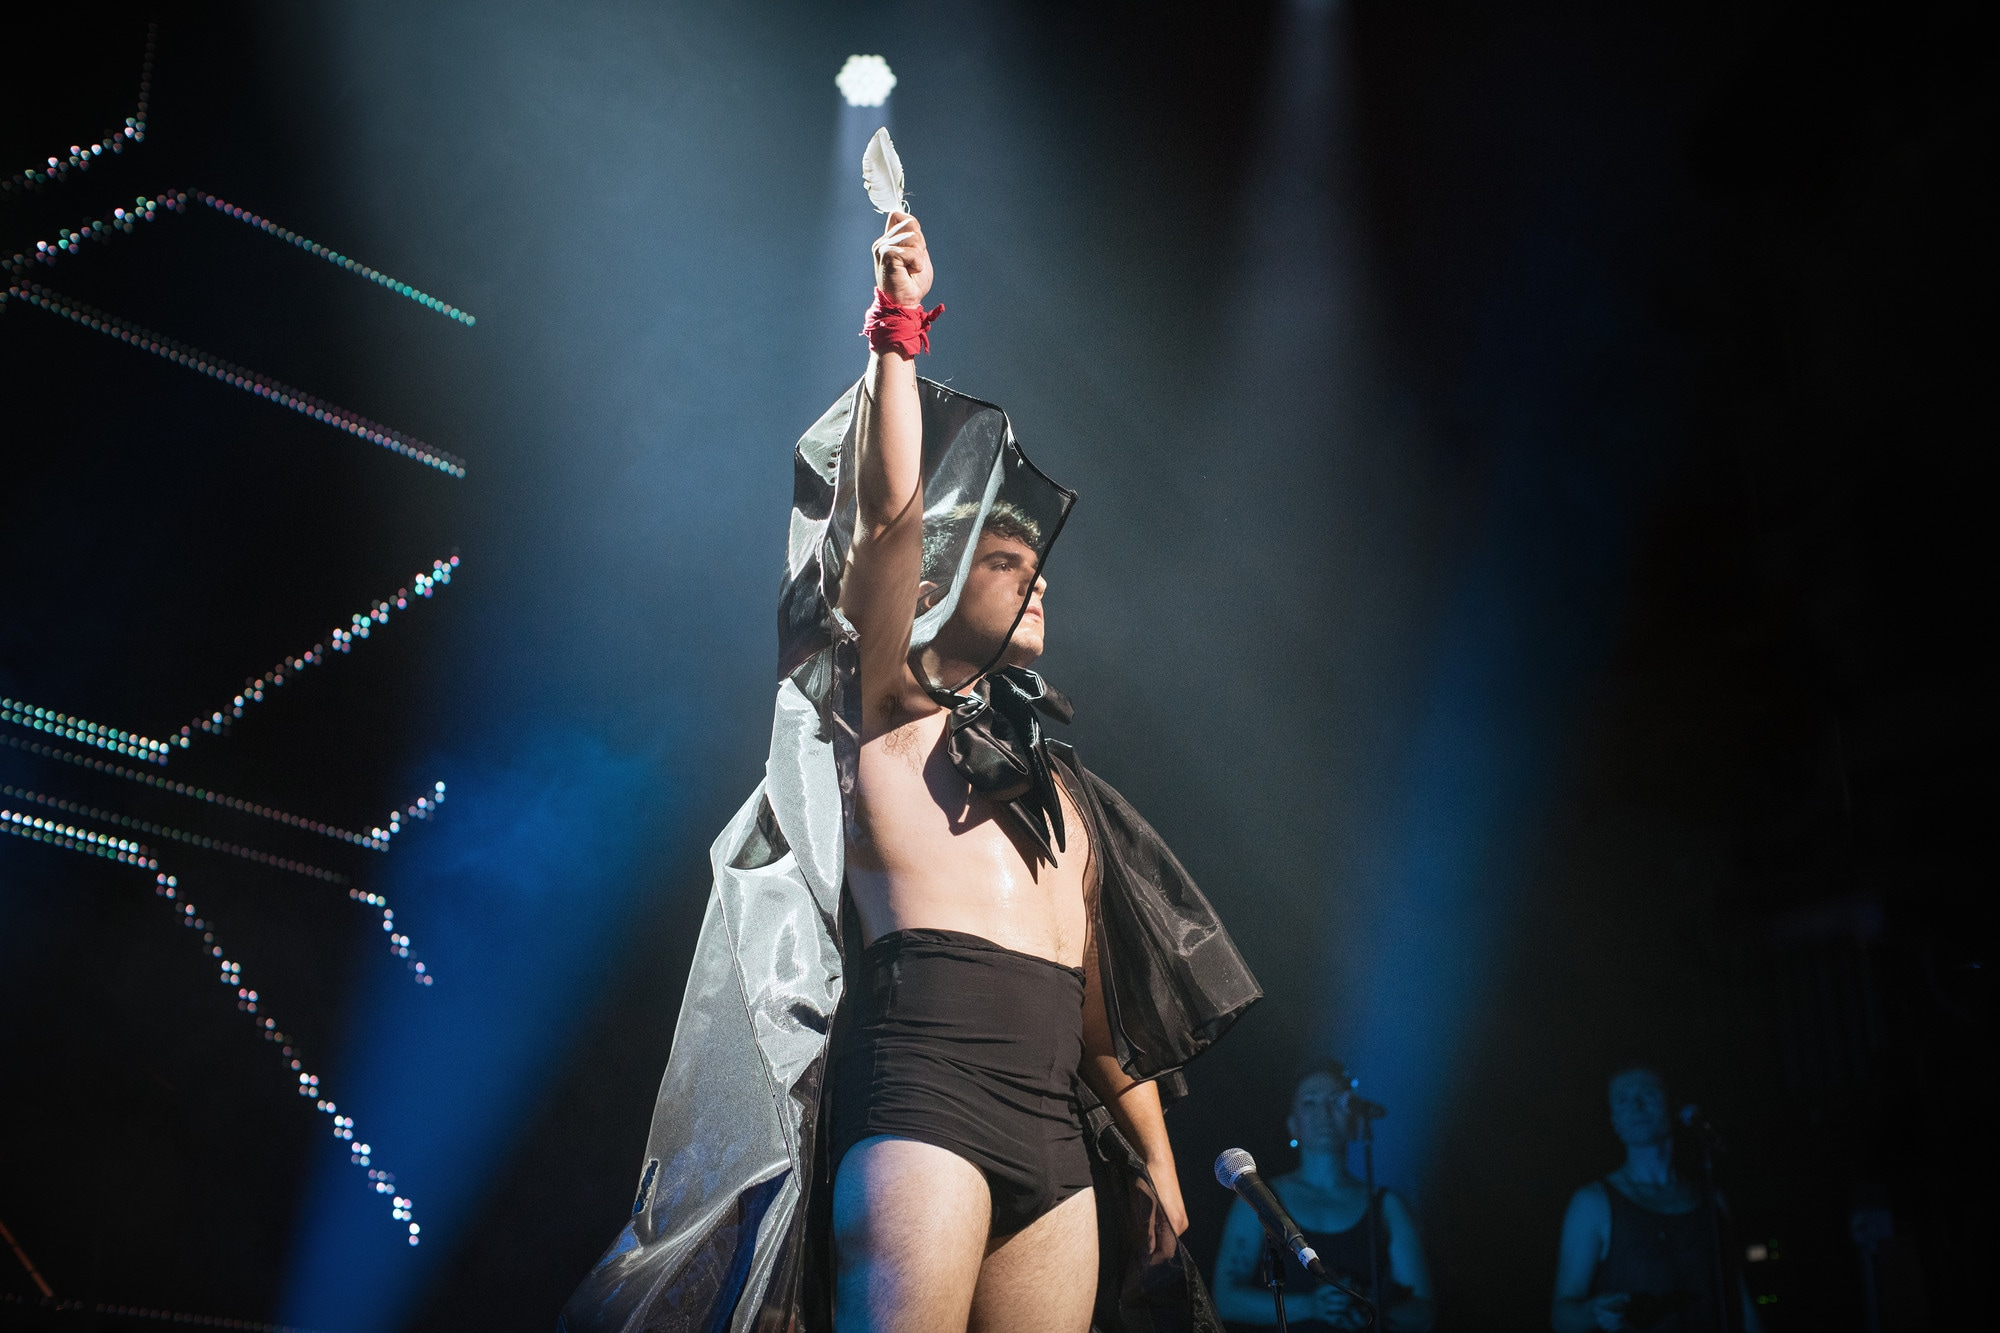 On stage a man with right arm extended upwards holds an eagle feather. On his wrist a red cloth is wrapped and tied. He is wearing a black cape and black high shorts. In front of him is a microphone and behind him to his left are two female singer